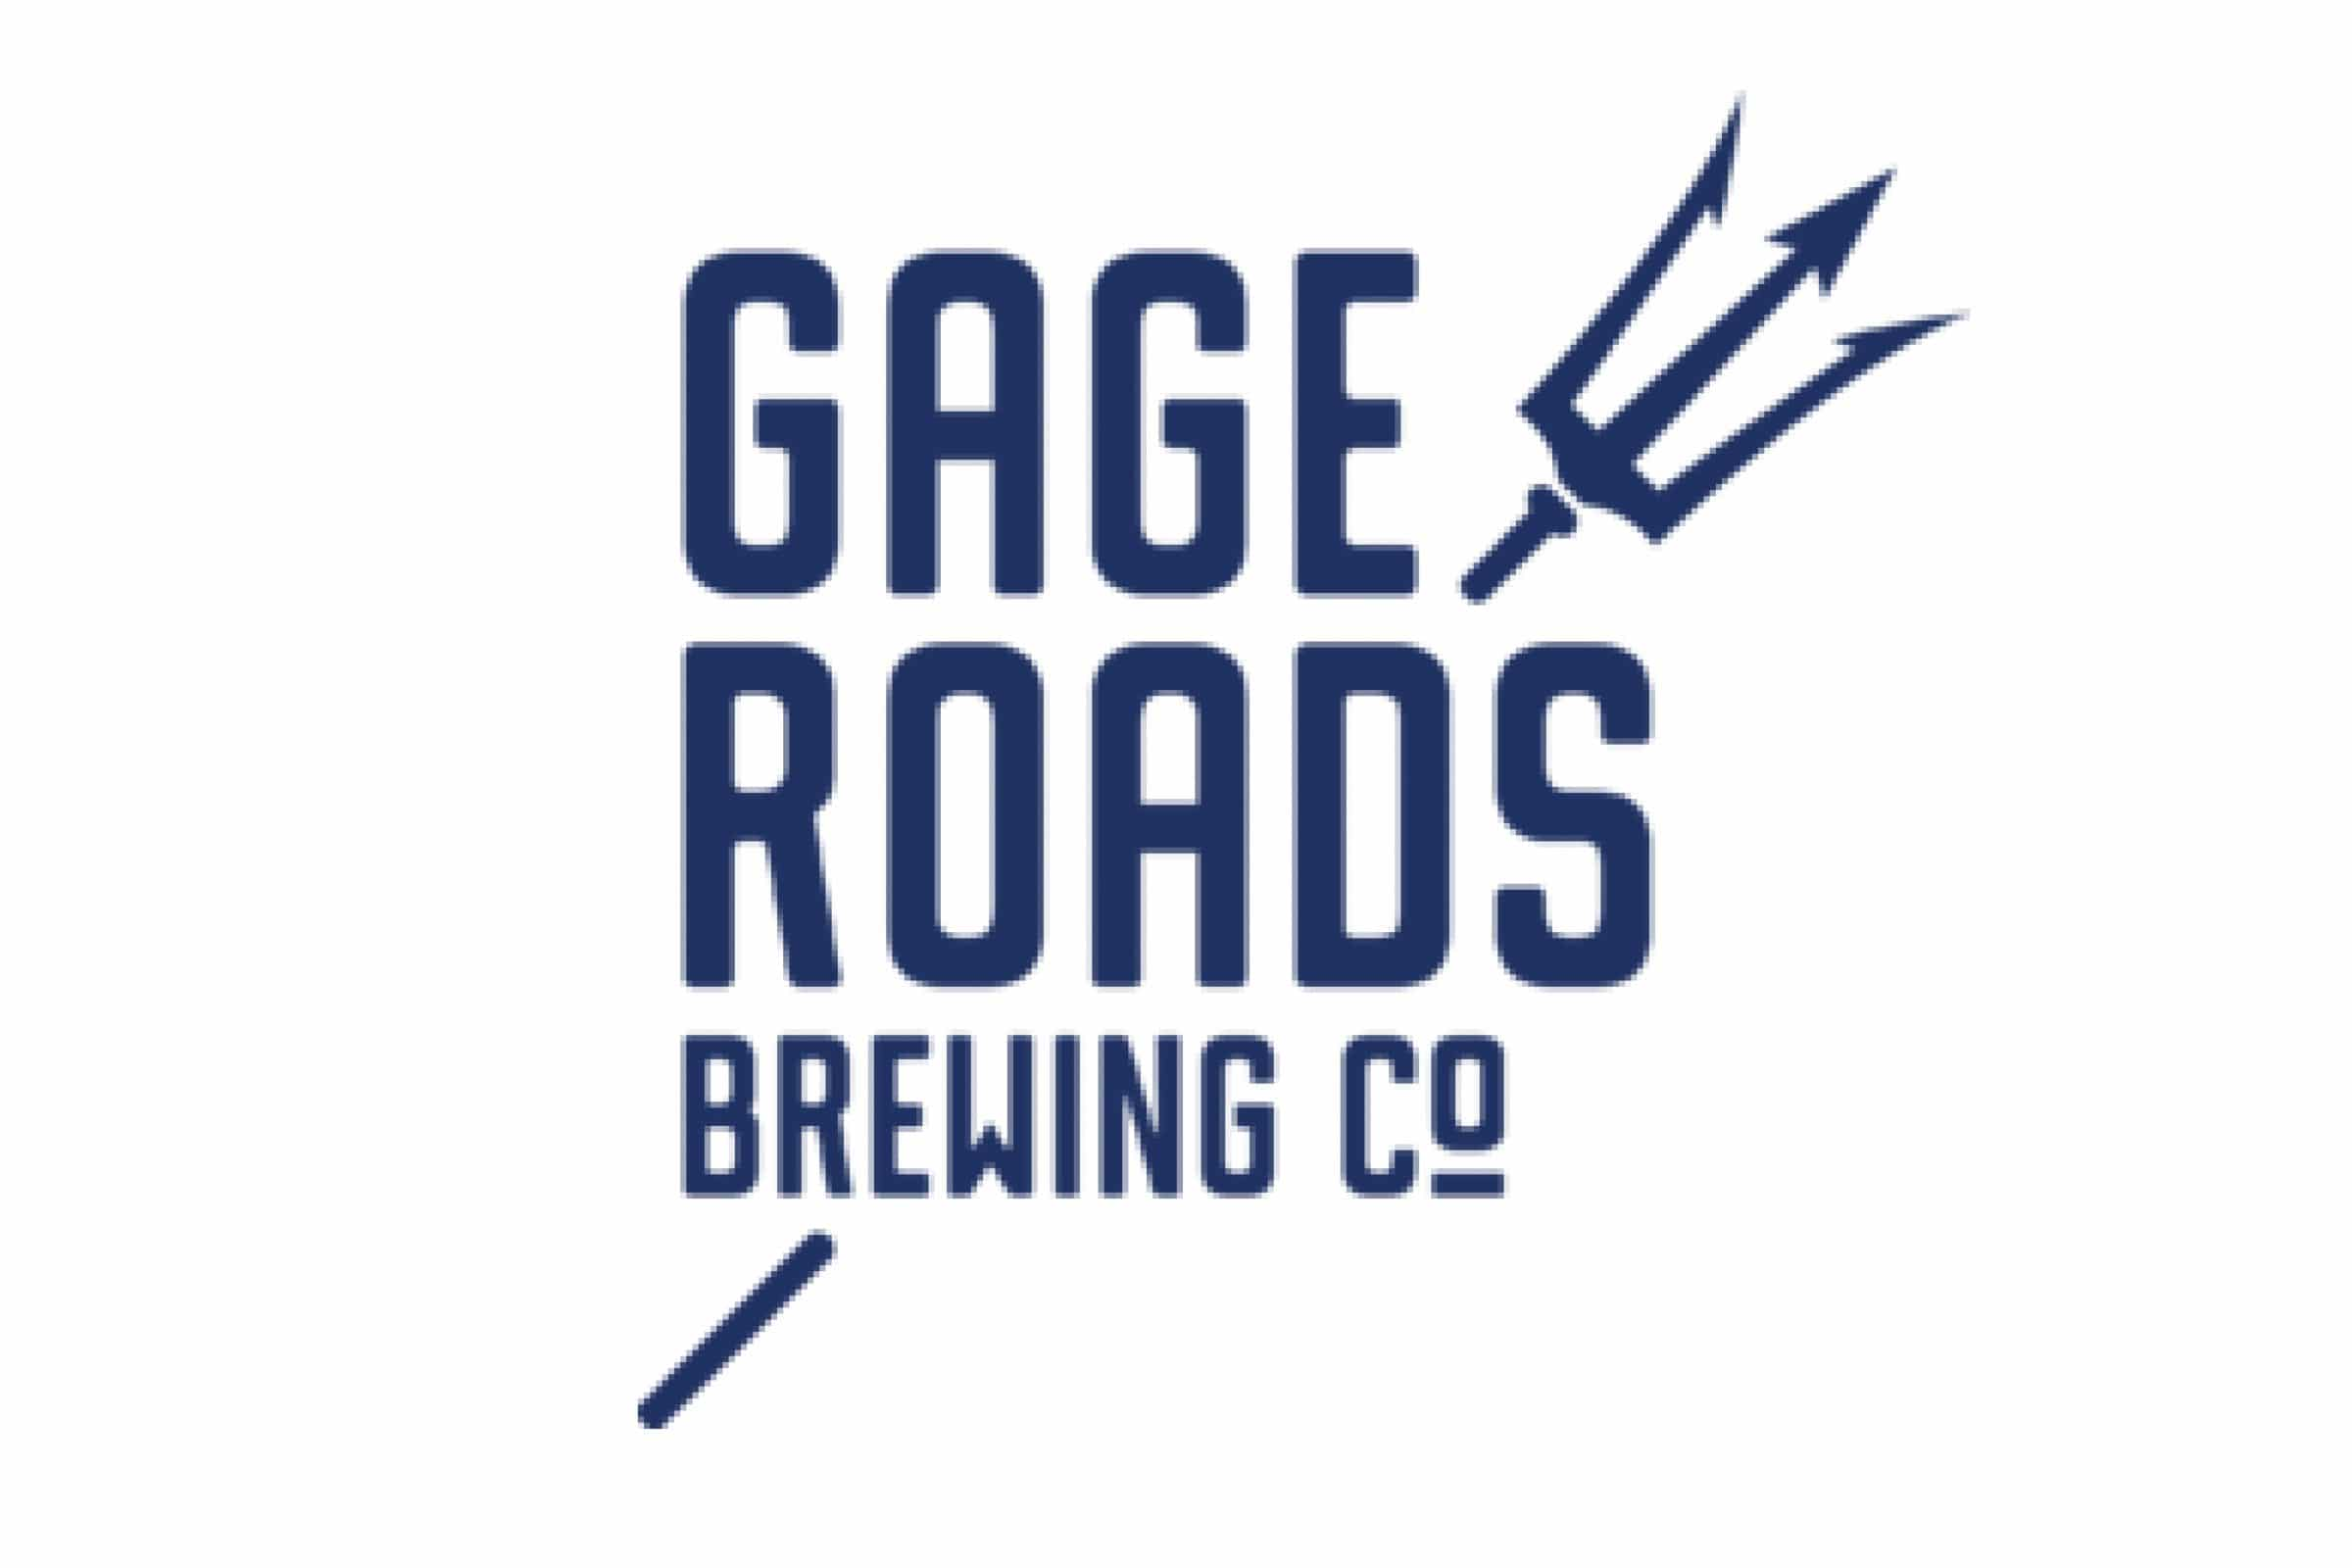 gage roads logo sponsor of the 2019 warren jones gala luncheon in perth